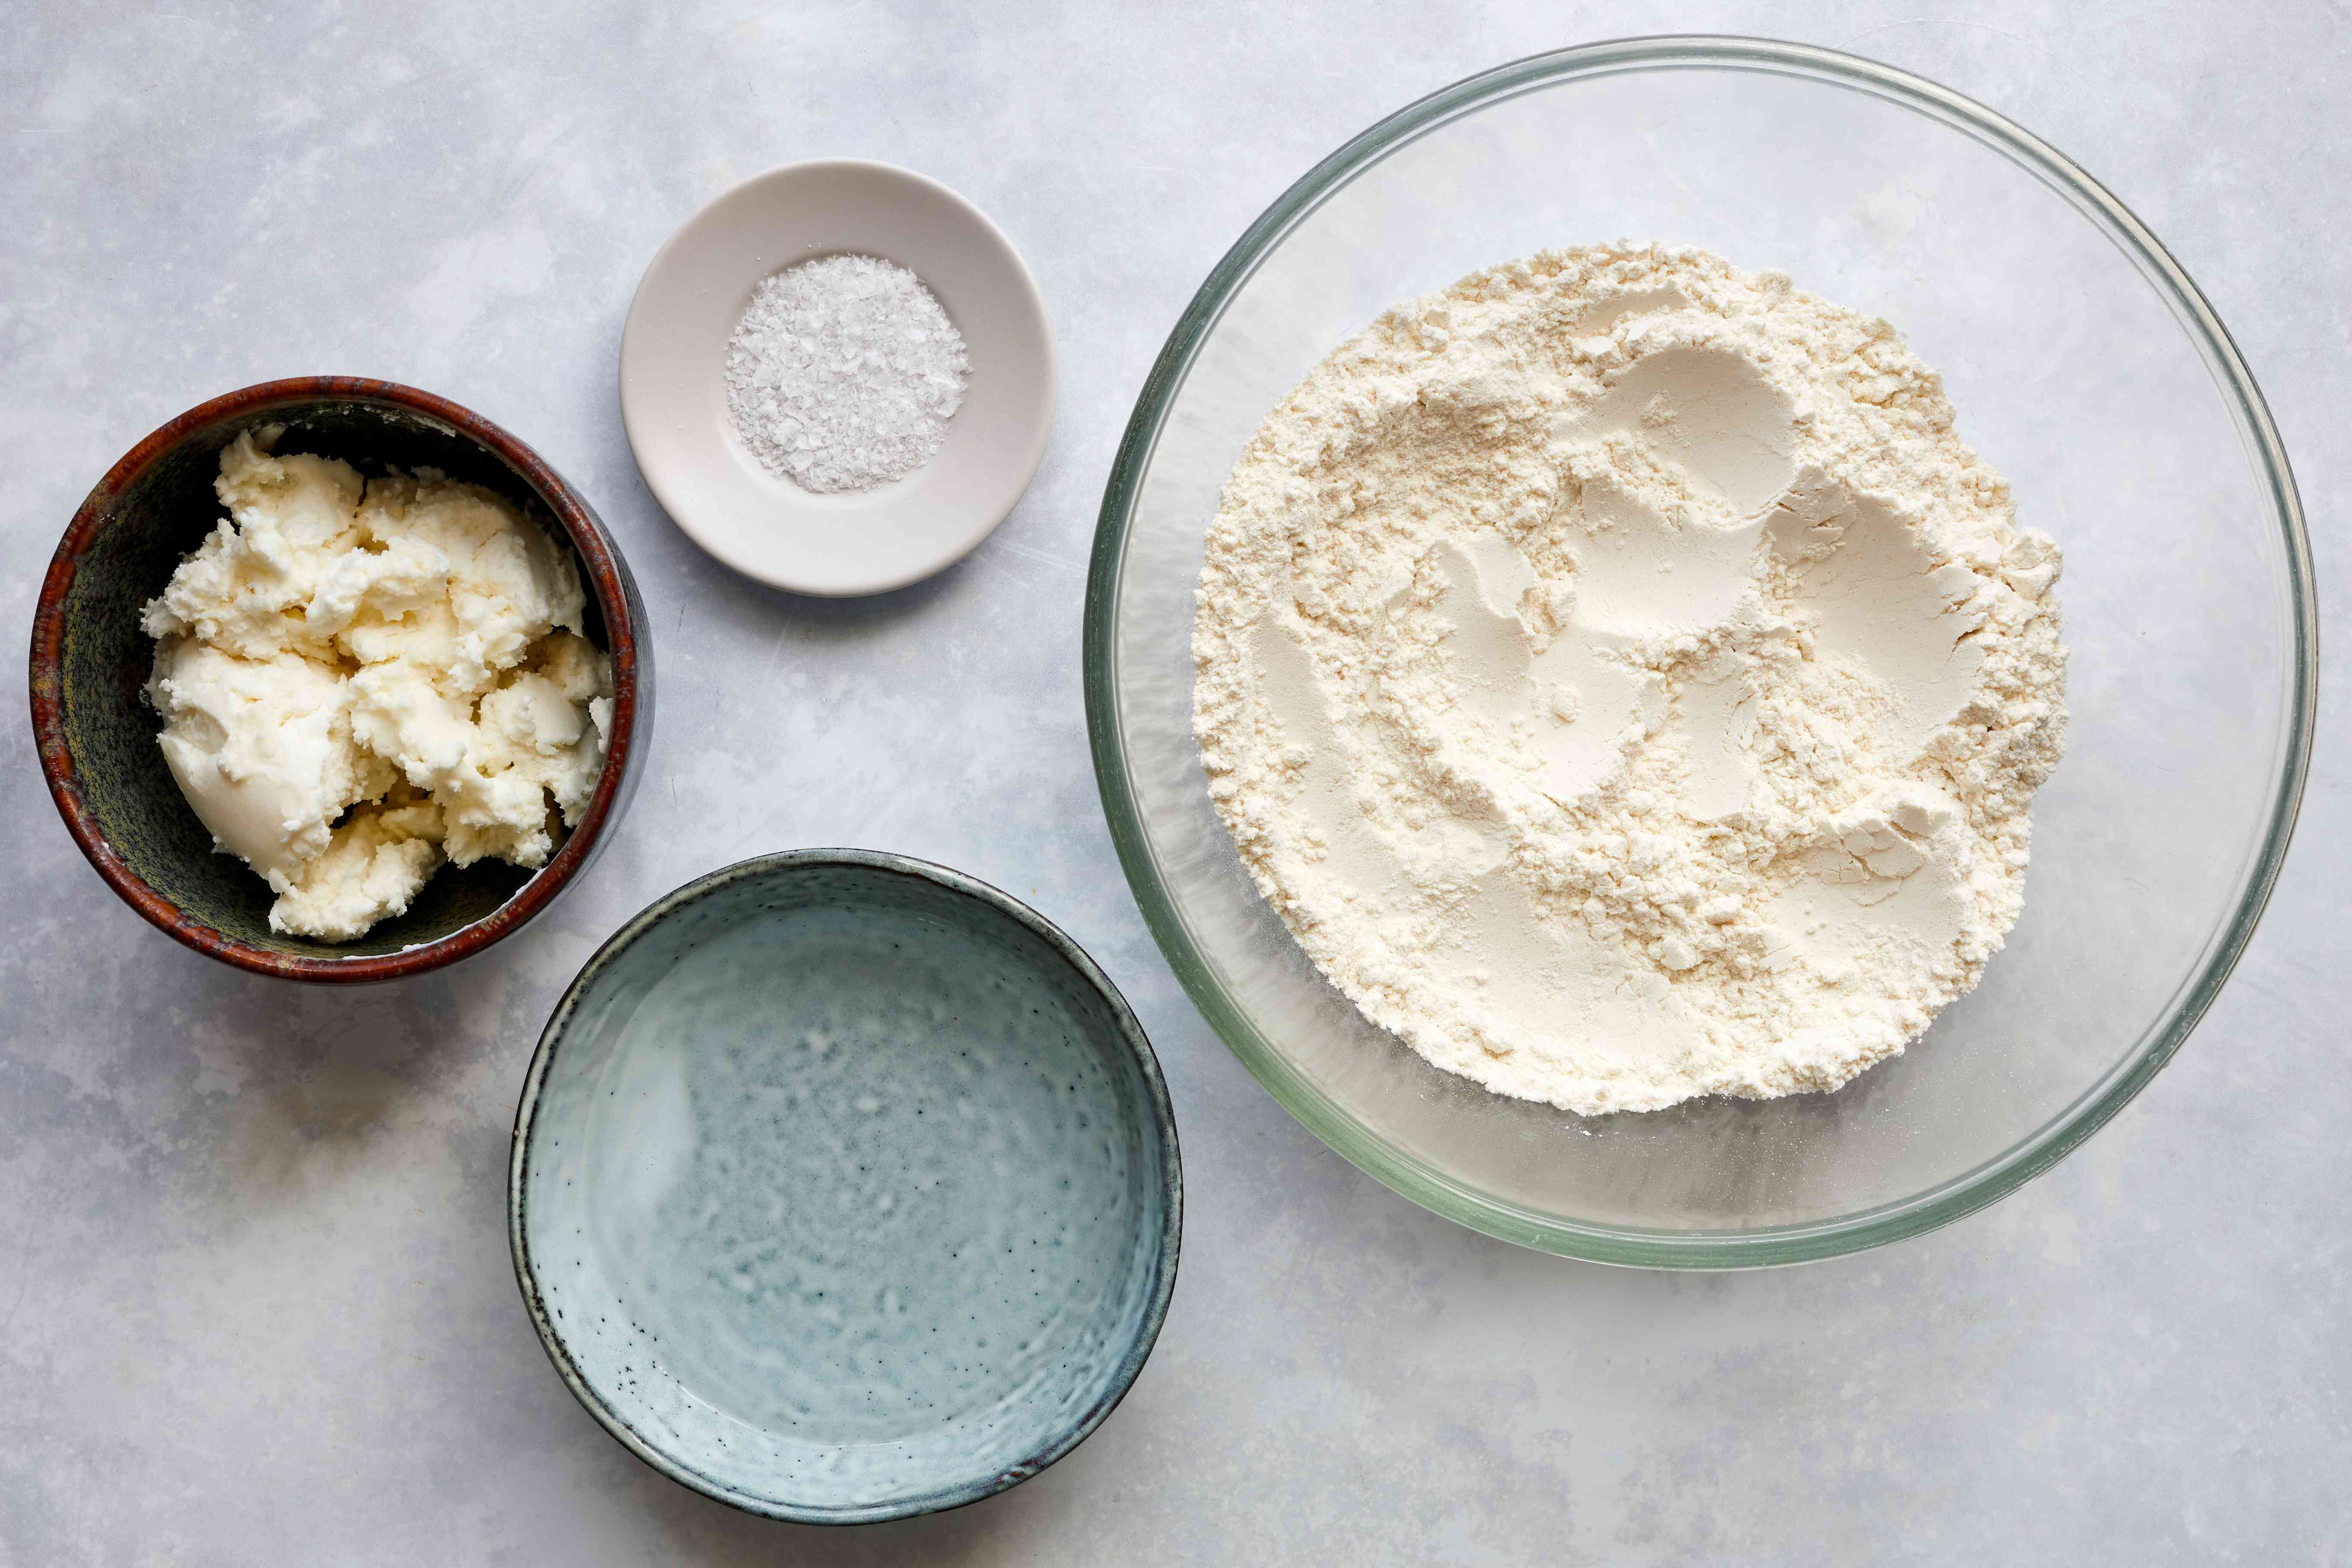 Ingredients for making a pie crust